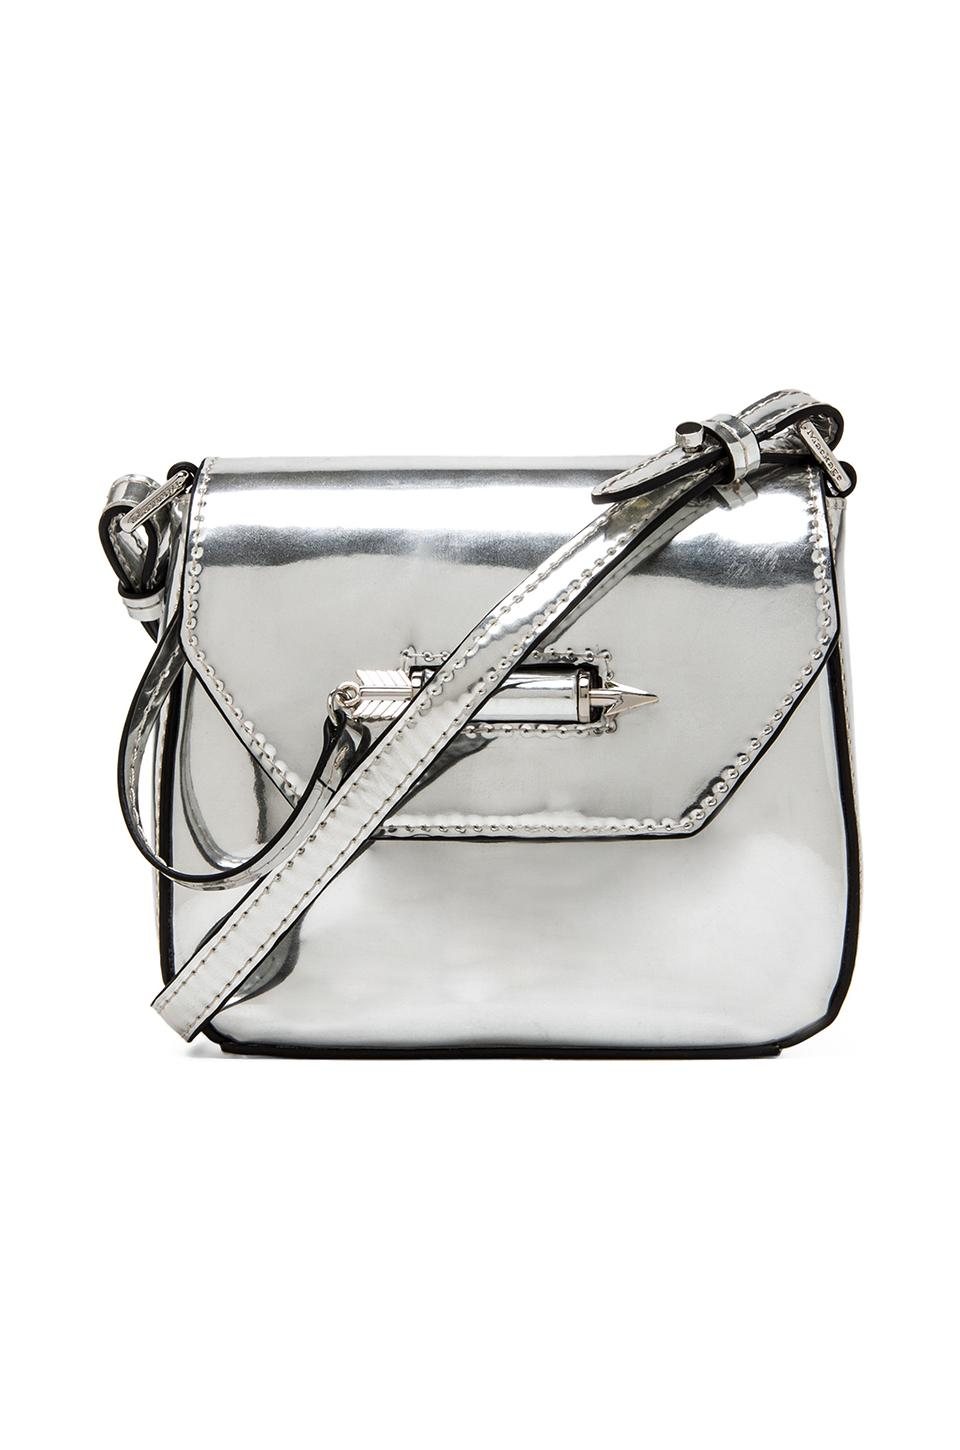 Mackage Novaki Small Crossbody in Silver Mirror